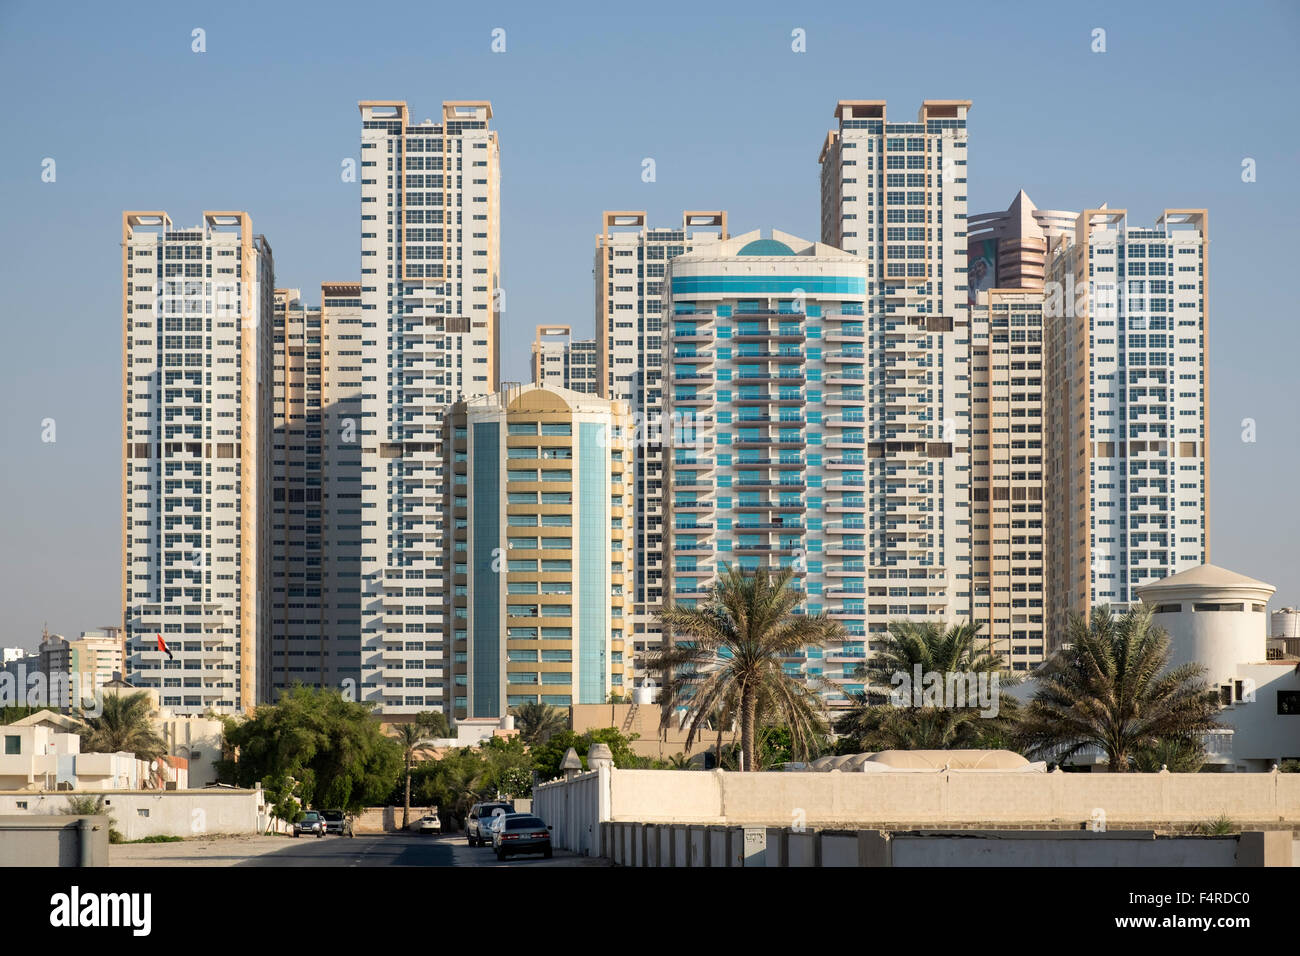 View of modern high-rise residential apartment blocks in Ajman Emirate in United Arab Emirates - Stock Image